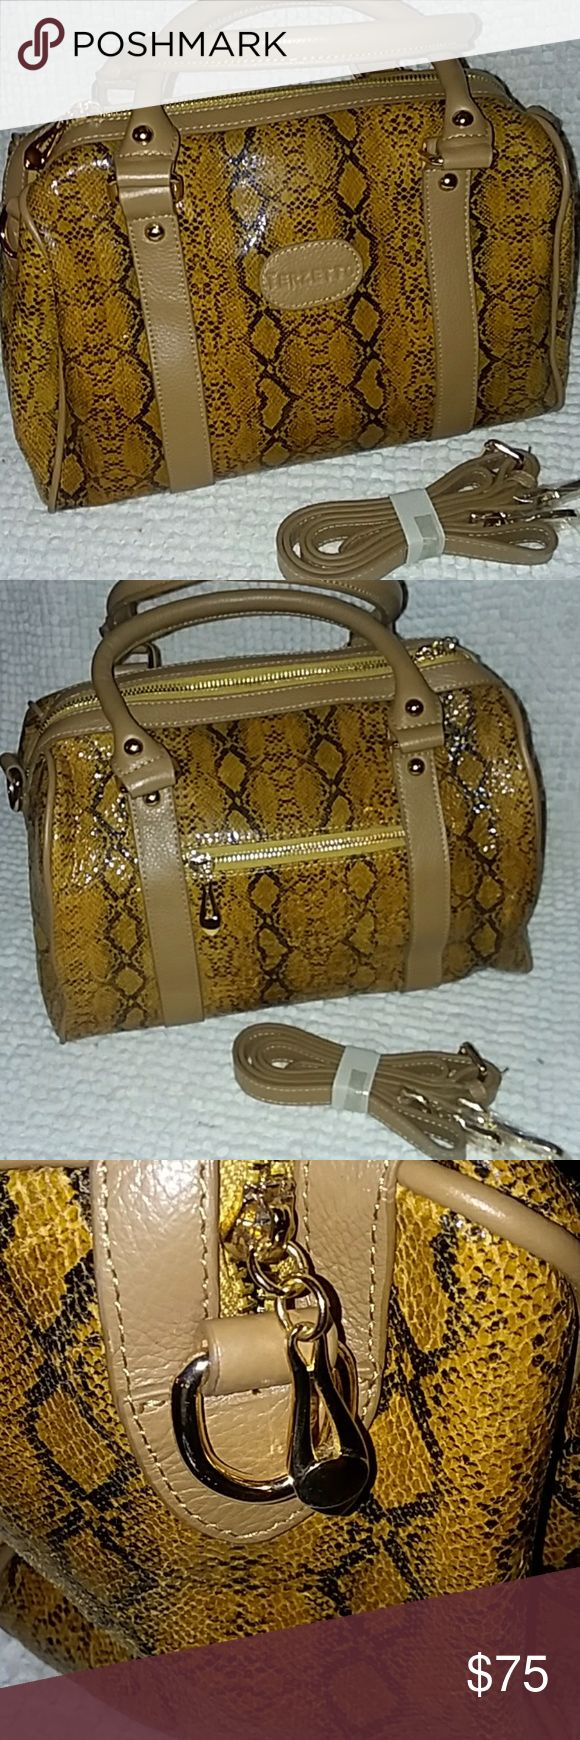 """Terzetto leather snack skin satchel NWOT Dial top rolled handles - Detachable adjustable shoulder strap - Top zip closure - Snakeskin printed exterior - Exterior features contrast inset front panels and back zip pocket - Interior features zip wall pocket and 2 media wall pockets - Fully lined - Approx. 8"""" H x 12"""" W x 5"""" D - Approx. 10"""" handle drop, 22"""" strap drop - ImportedMaterialsGenuine cow hide leather exterior, cotton liningCareWipe with damp cloth Terzetto Bags Satchels"""